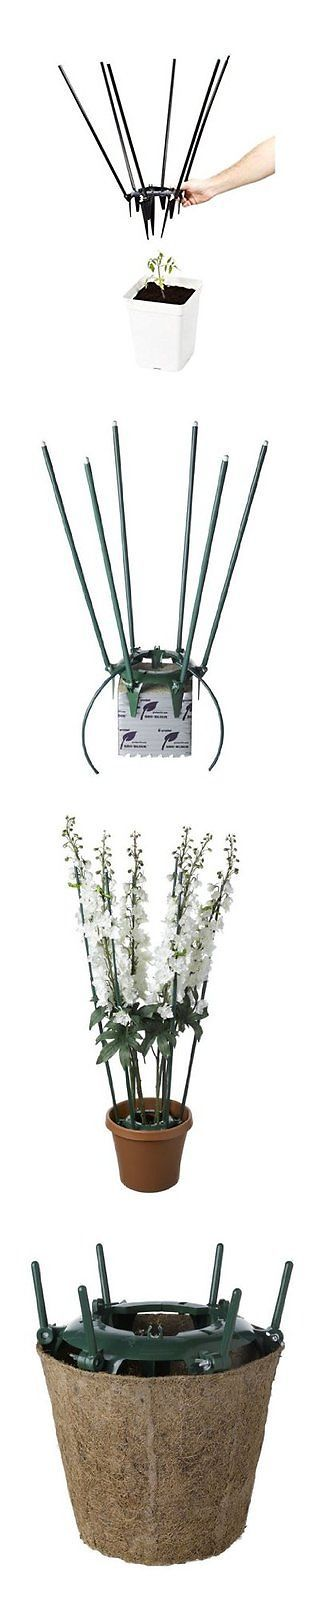 Plant Ties and Supports 181001: Garden Friends Ultimate Plant Cage 10-Pack -> BUY IT NOW ONLY: $172.58 on eBay!